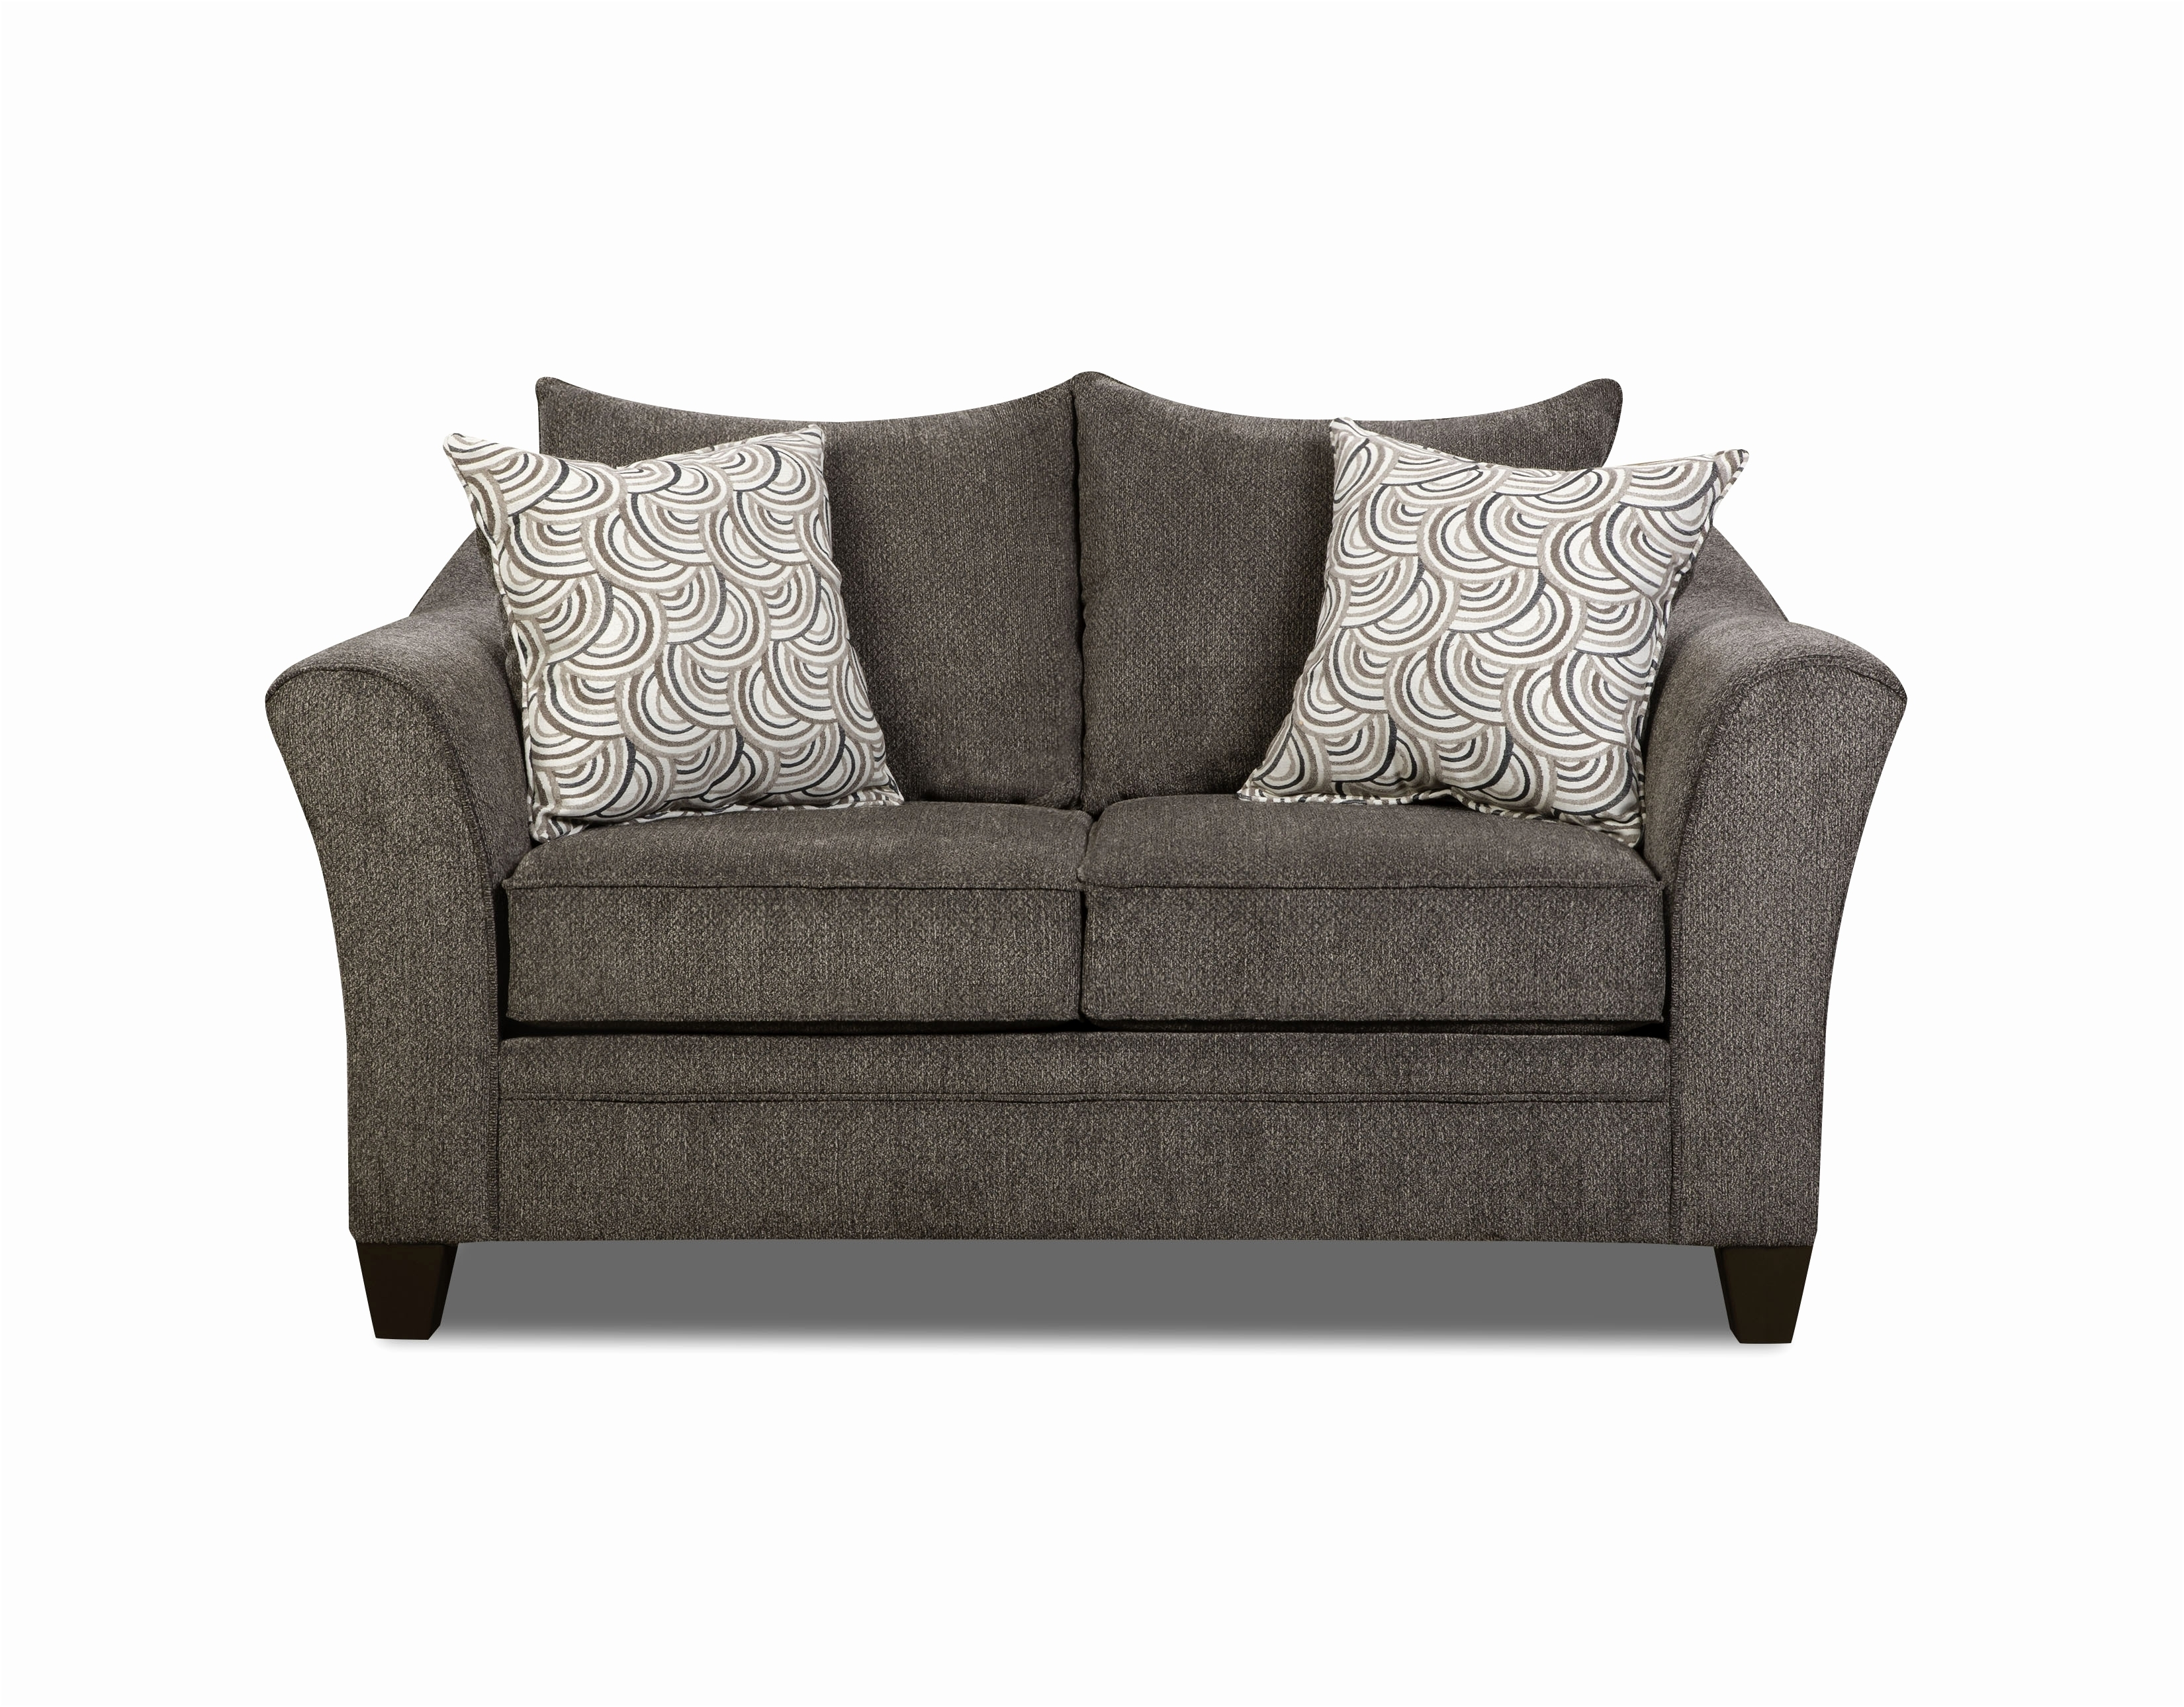 Fresh Sears Leather Sofa New – Intuisiblog for Sectional Sofas at Sears (Image 4 of 15)